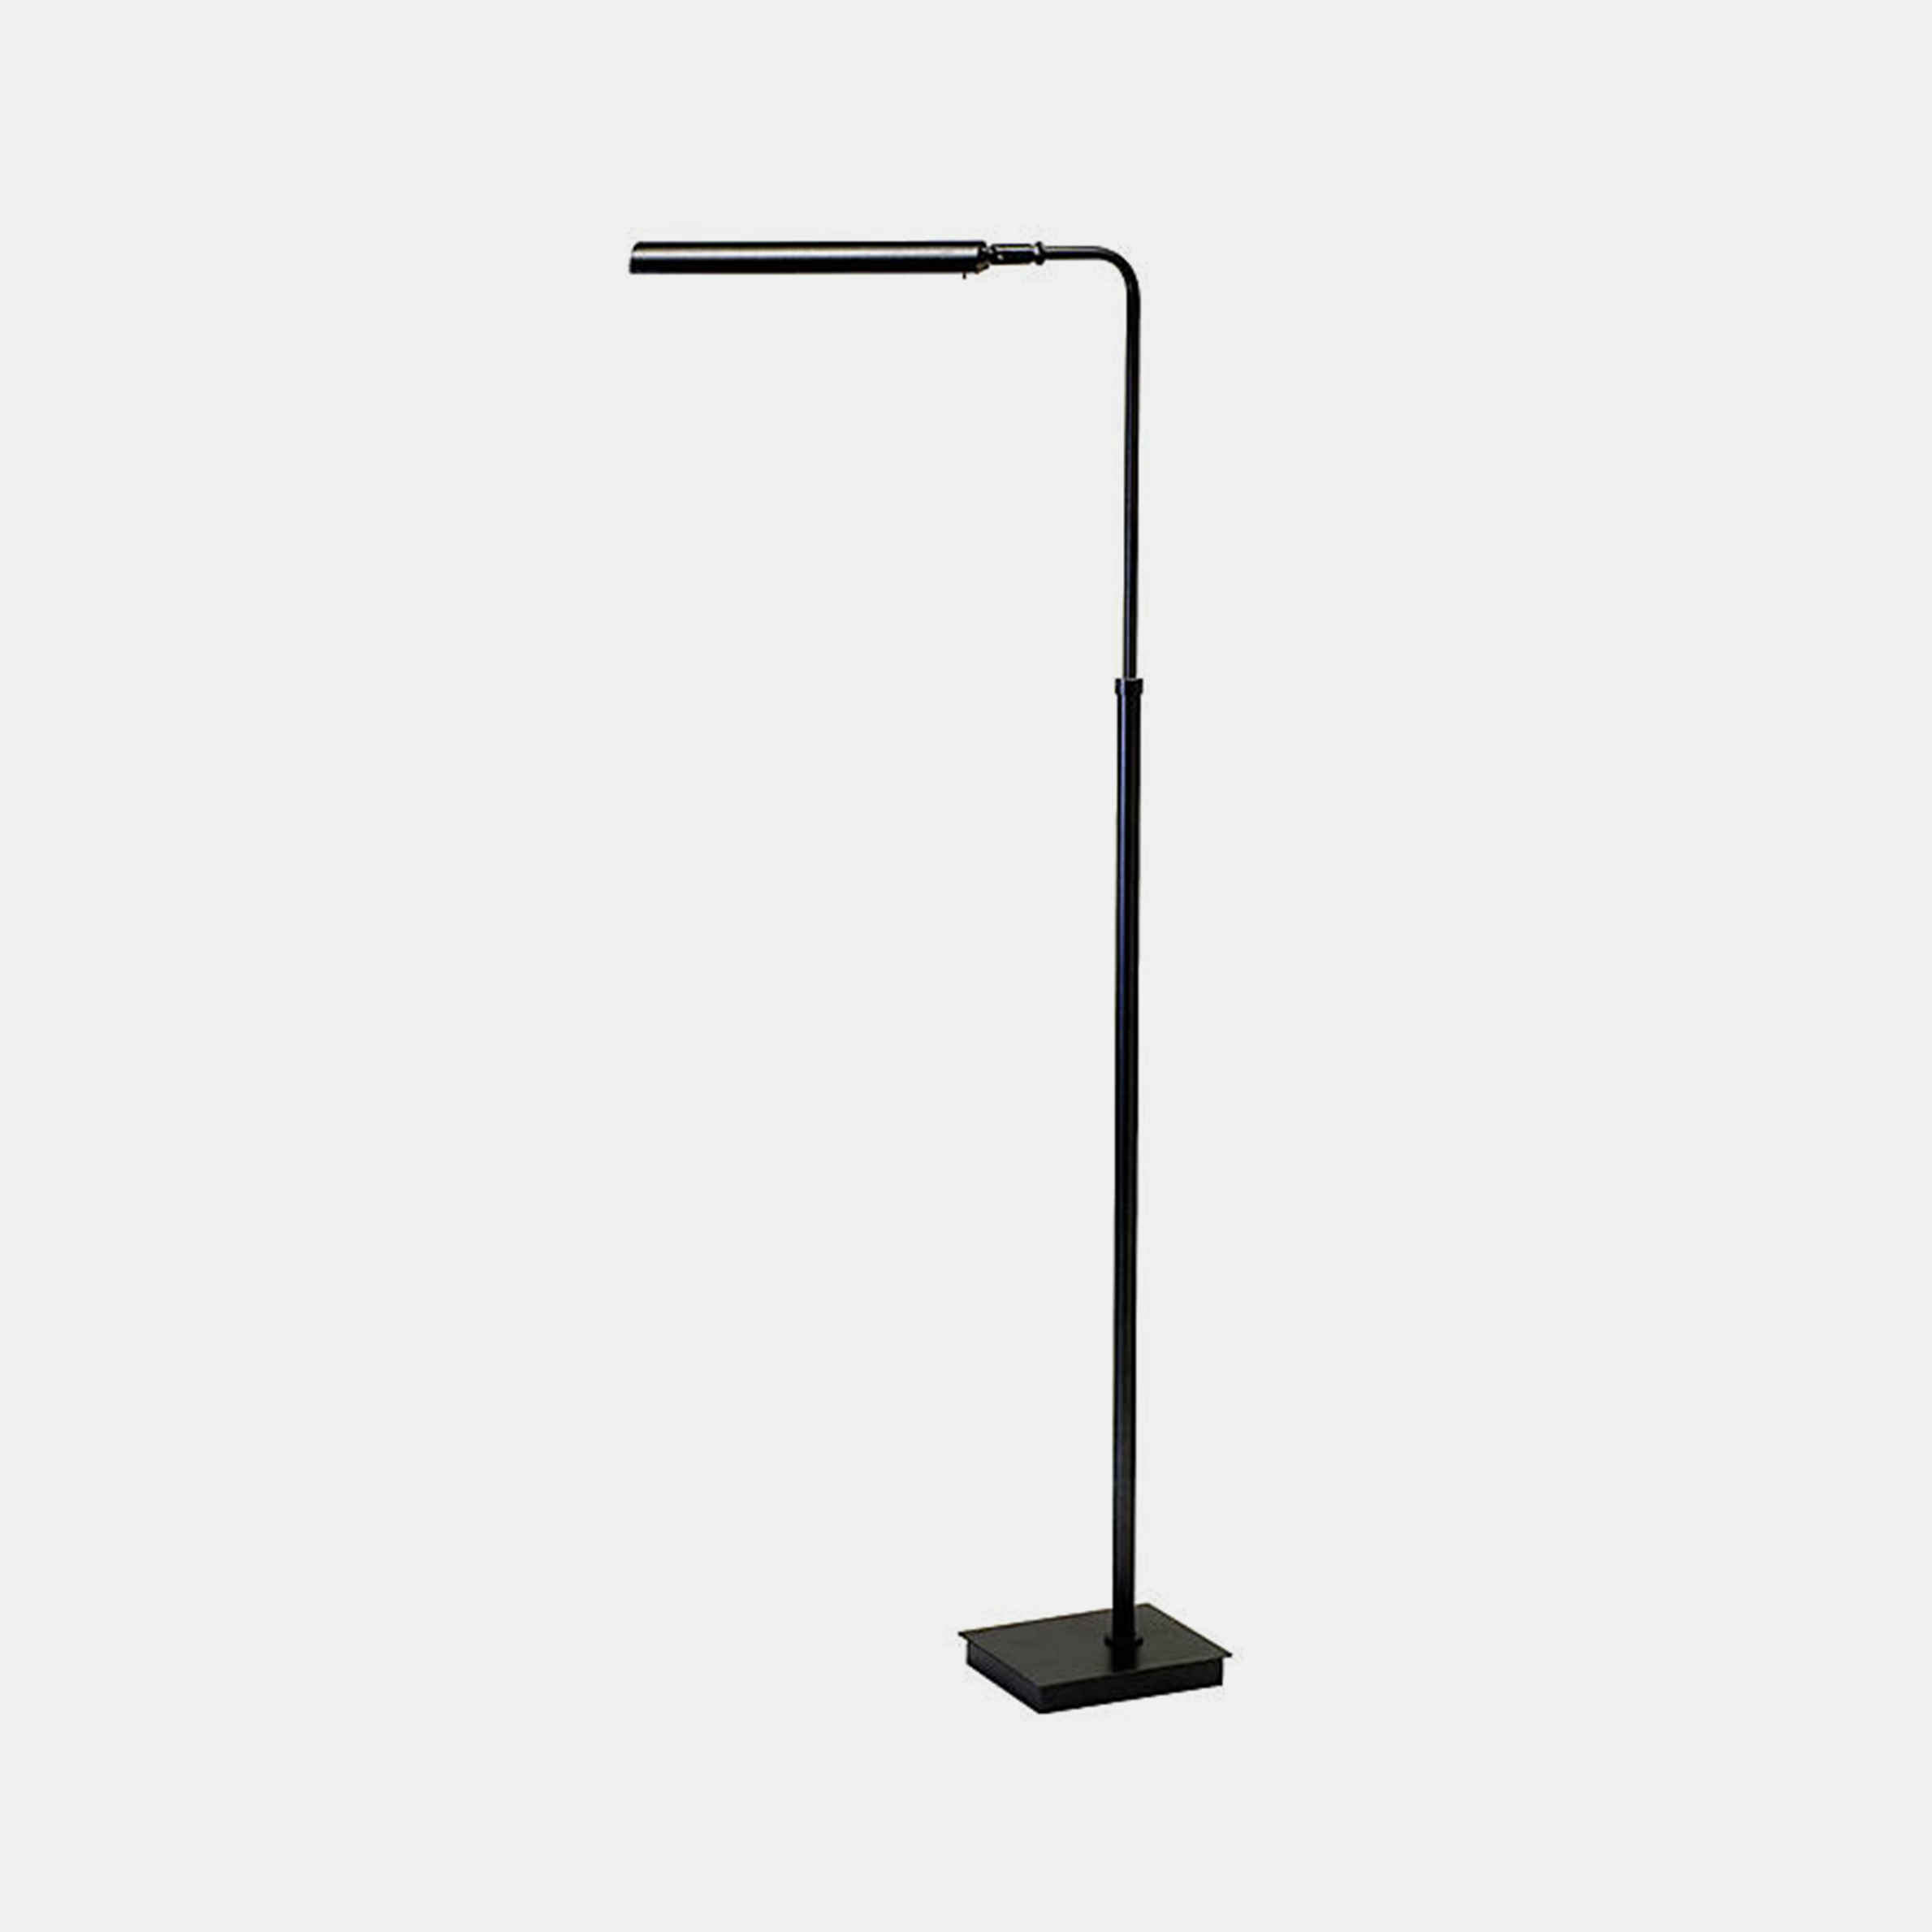 "Matte Black Adjustable Floor Lamp  Base width 7.25"", depth 6"". Fixture width 11.25"", height adjustable from 37"" to 46.5"", depth 17"". Shade width 11.25"". Available in black (shown), white, and gunmetal. Also available as table lamp. SKU001948HOT"